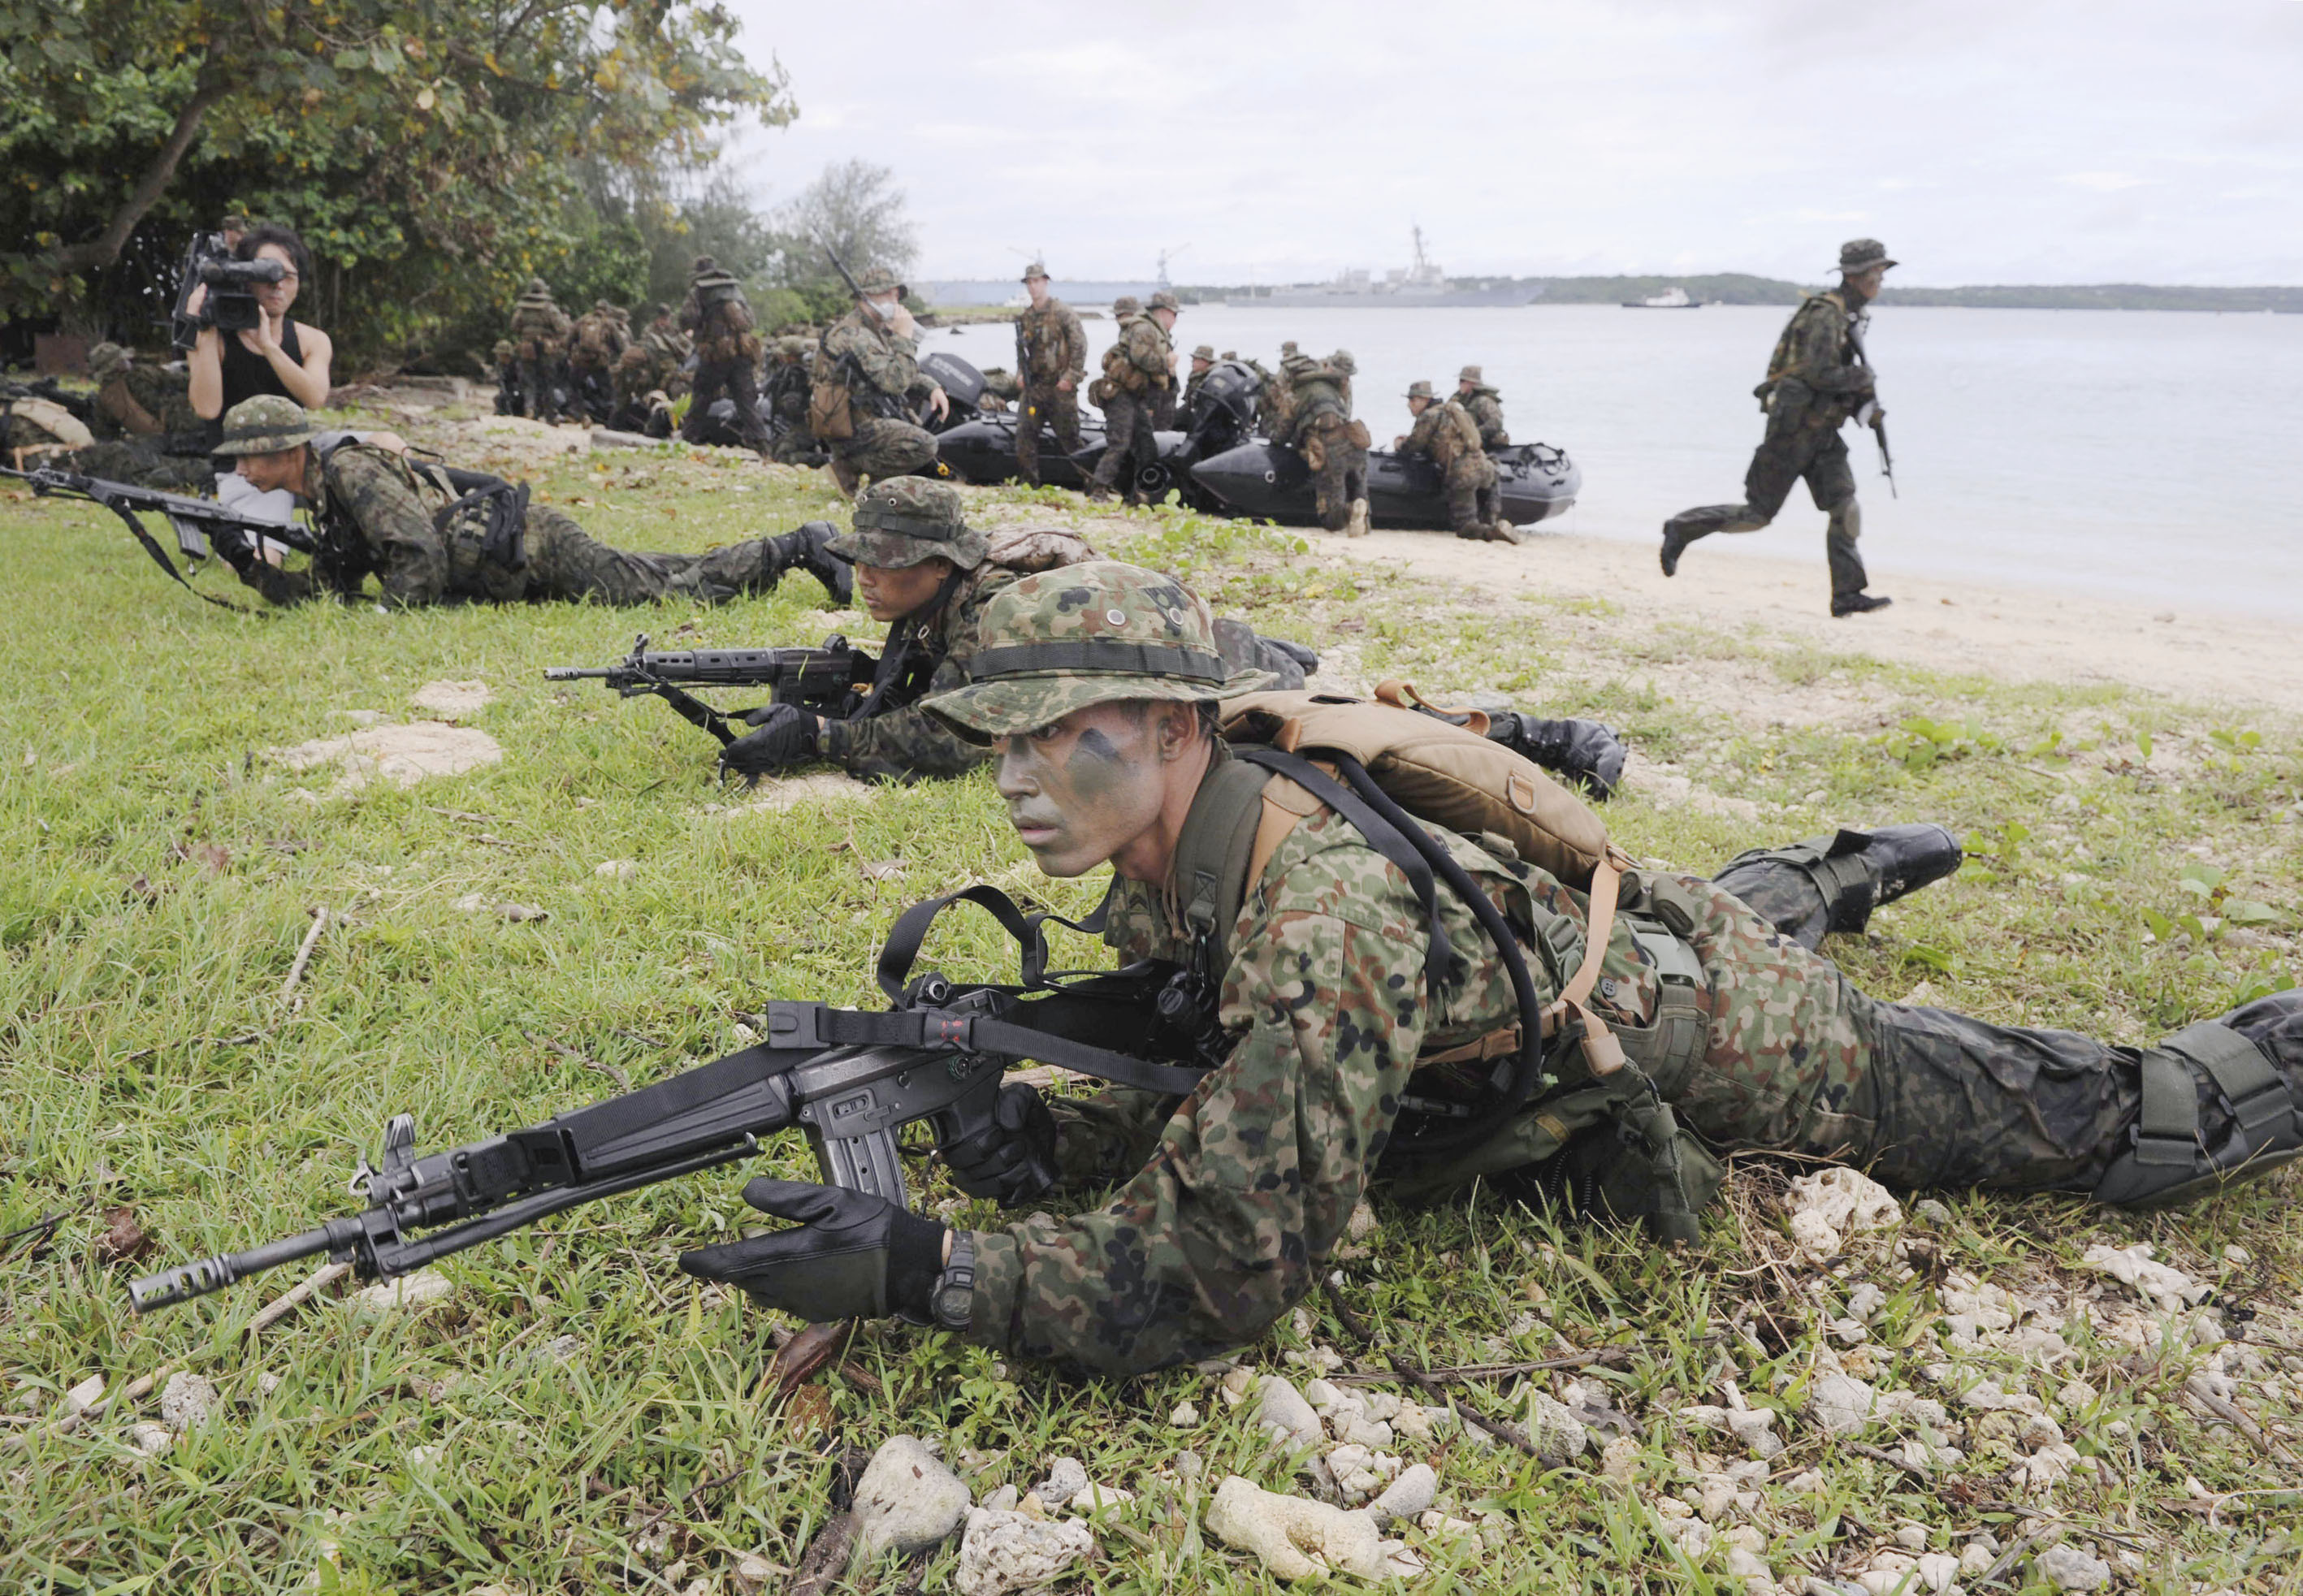 Nation's troops long way from hitting the beaches: experts